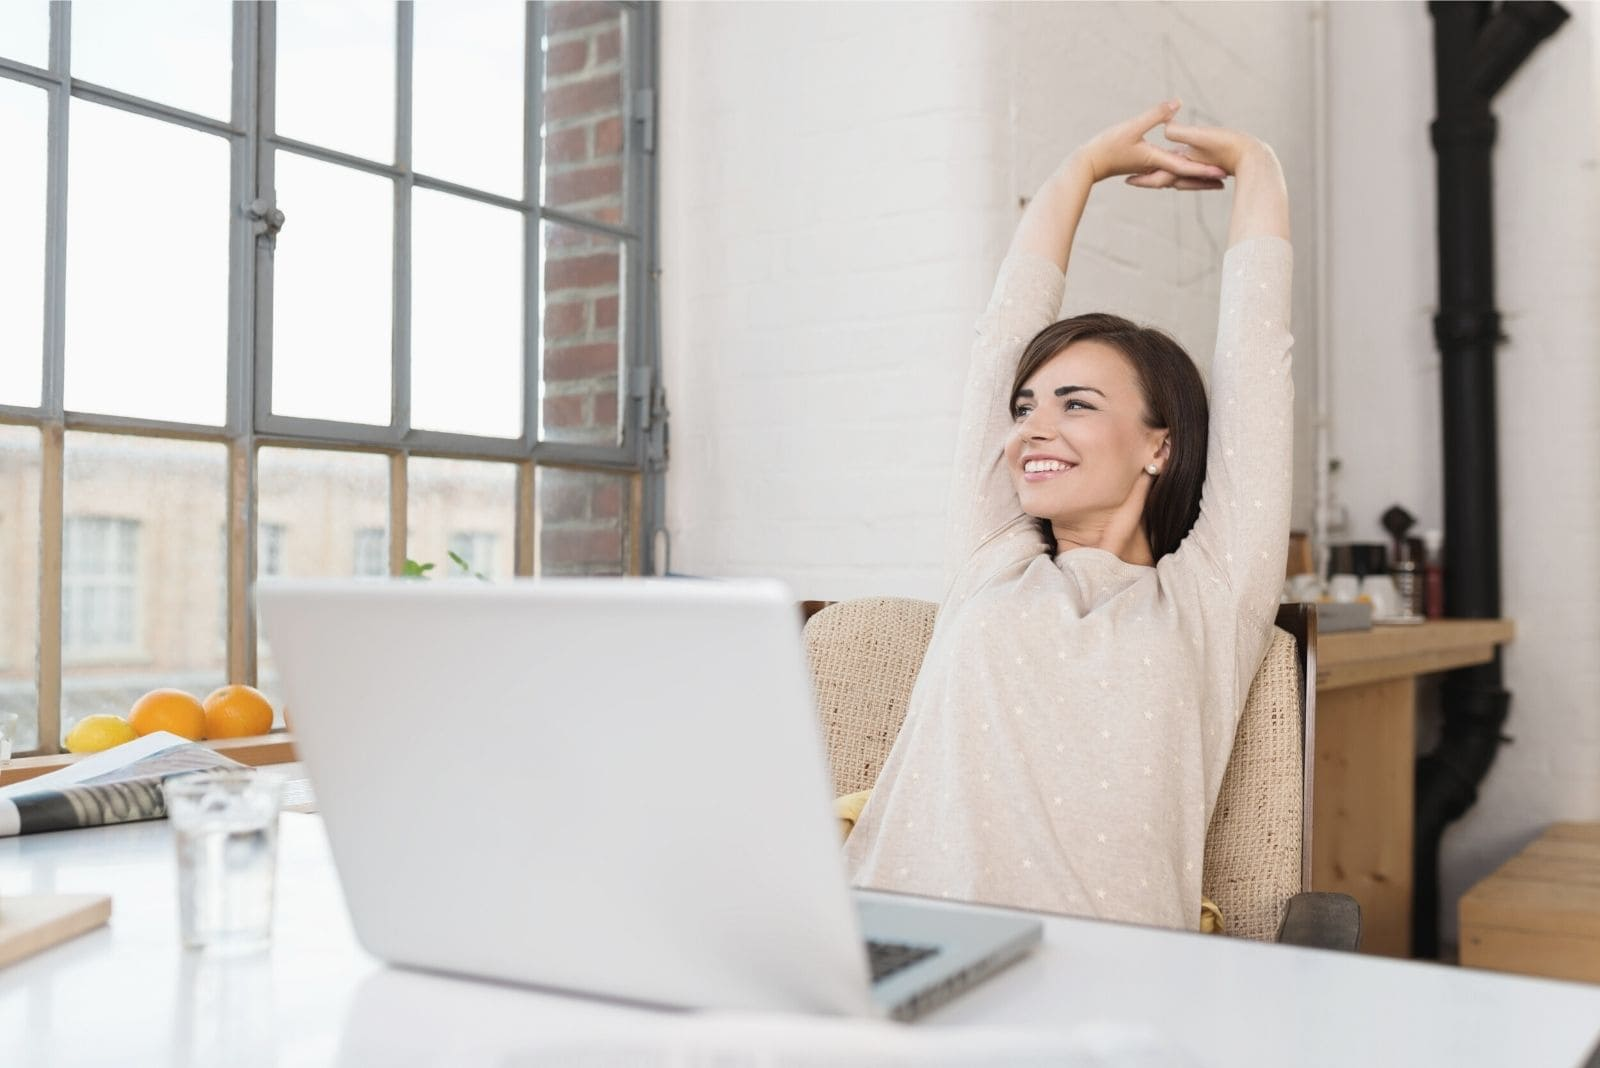 woman smiling and taking a break from office work while sitting by her office table and stretching her arms